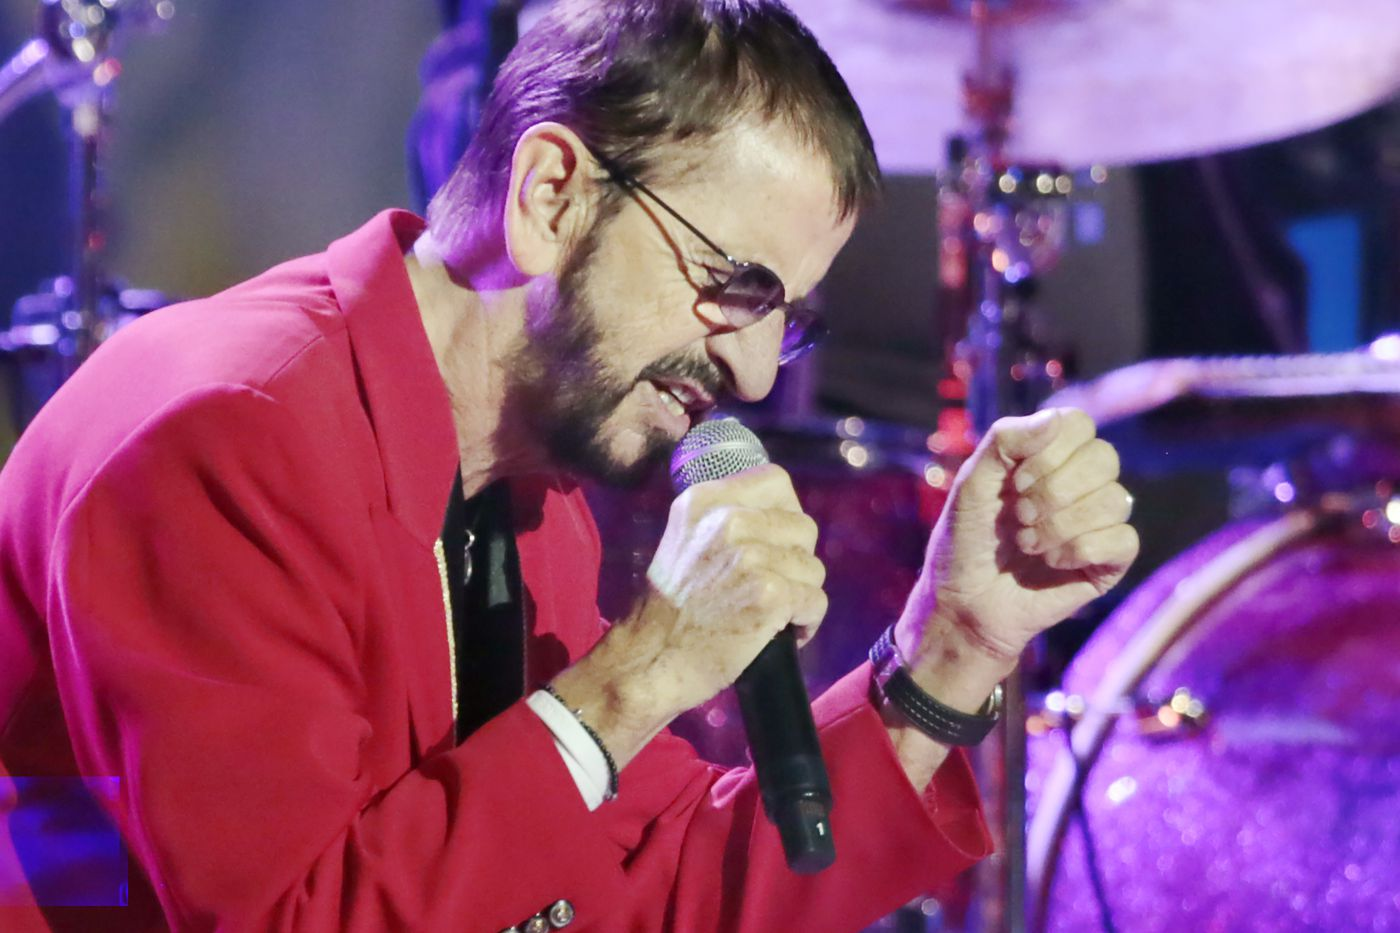 Ringo Starr, acting naturally and spreading peace and love ...